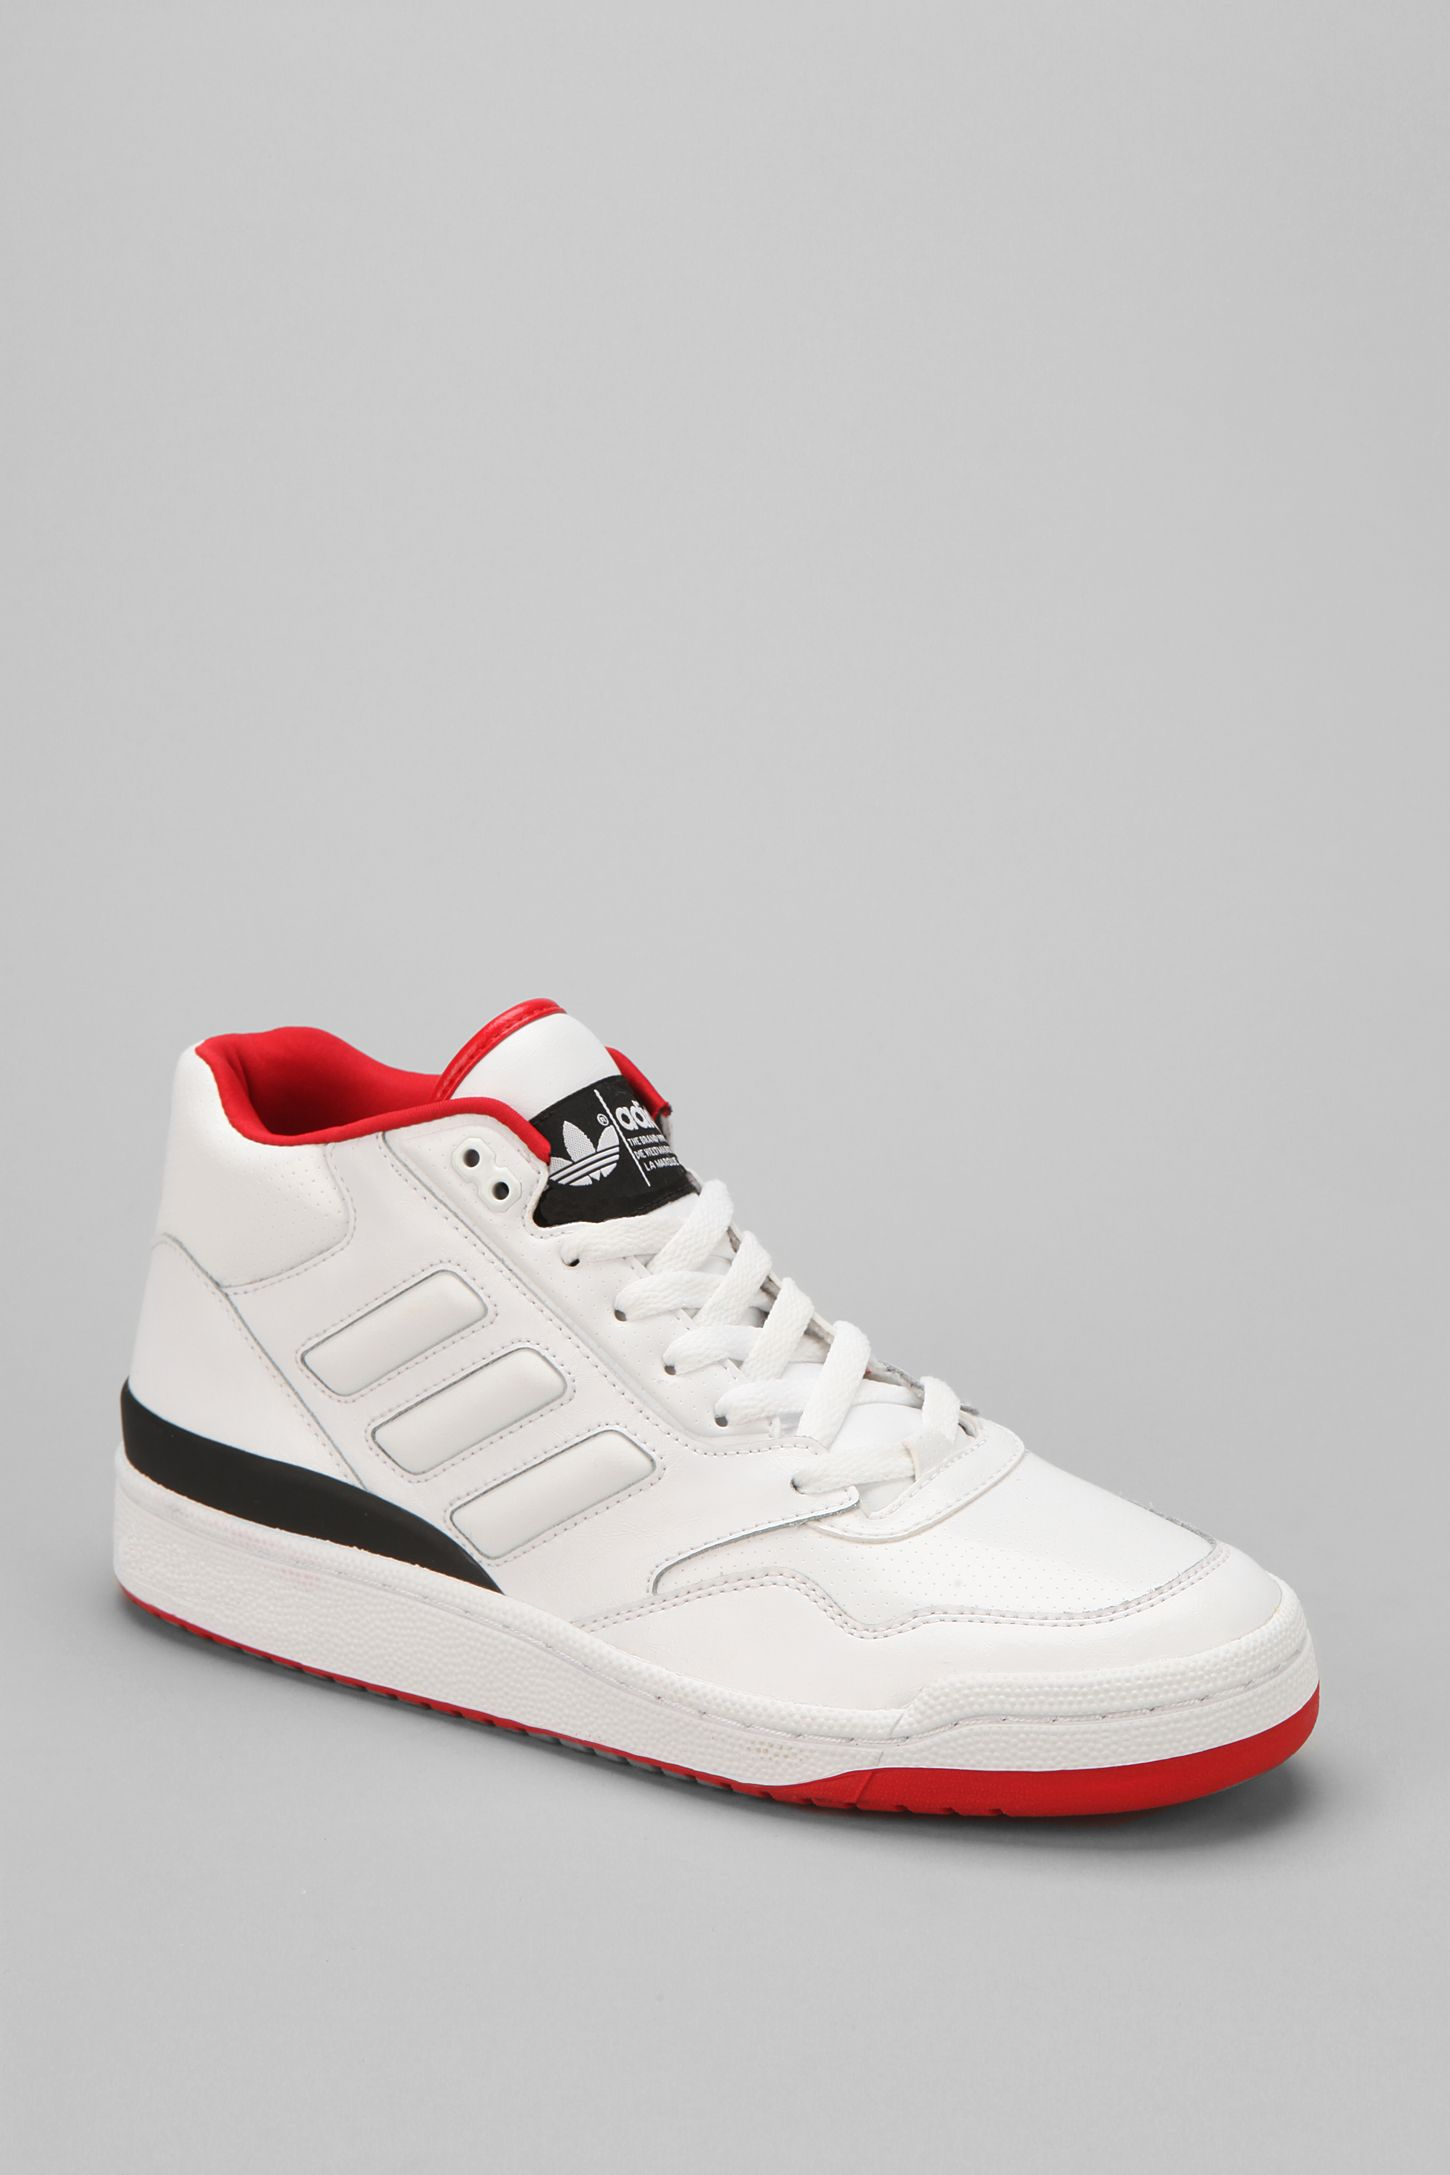 Adidas Originals Top Ten Hi Chaussures FtwwhtFtwwhtFtwwht